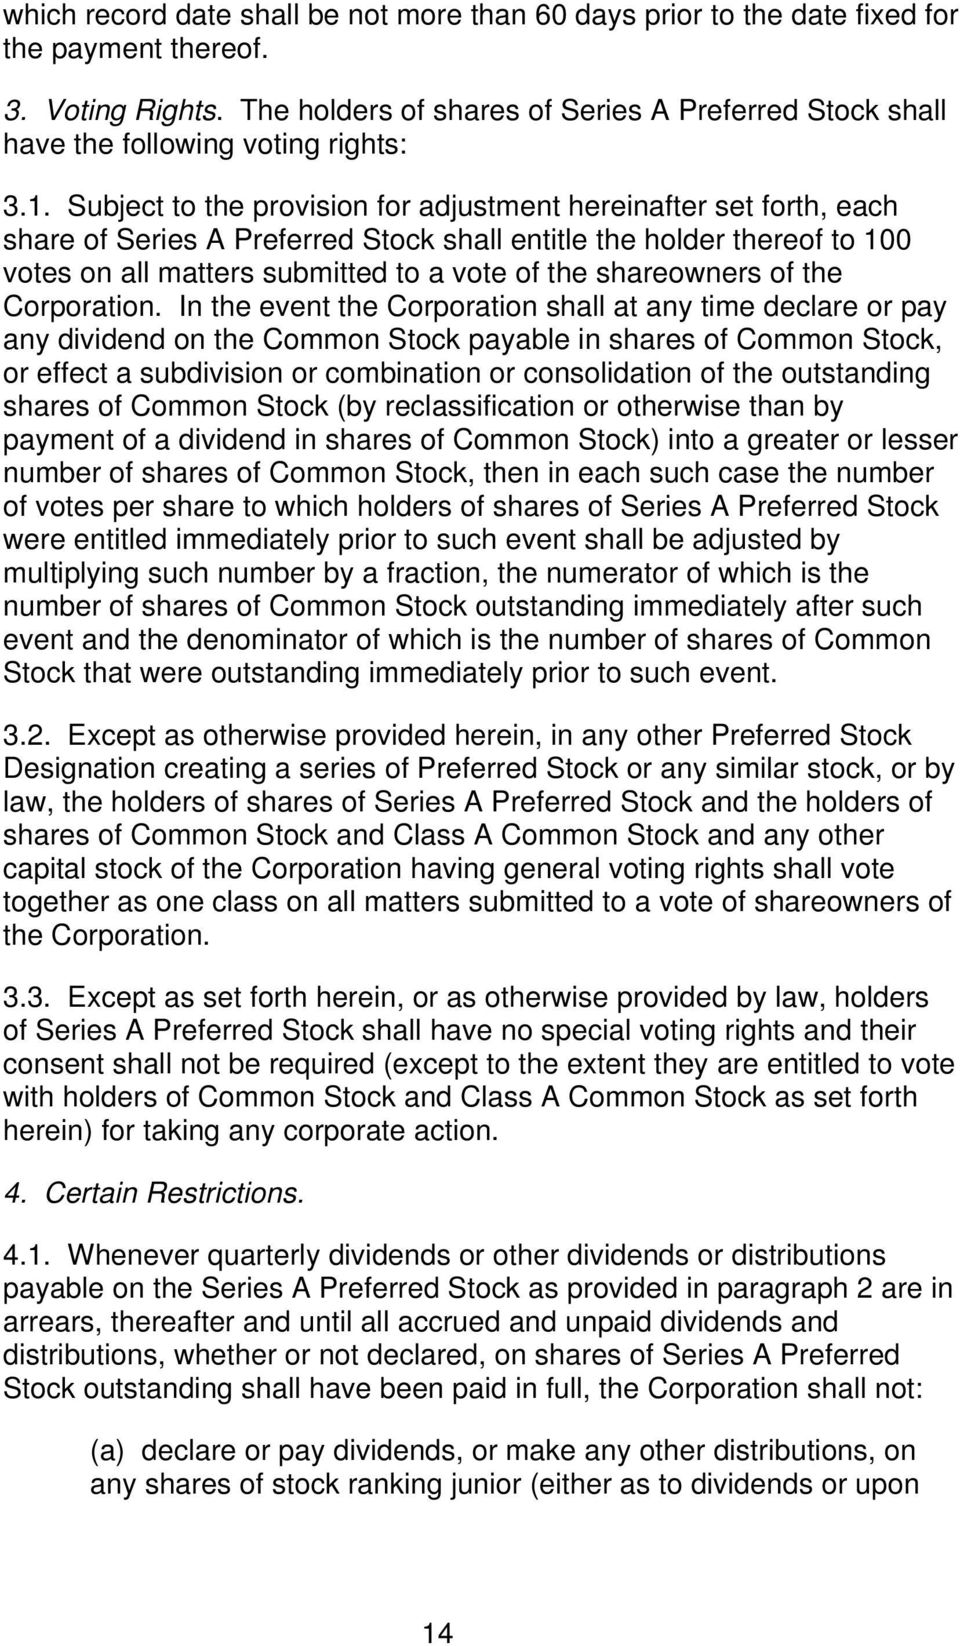 Subject to the provision for adjustment hereinafter set forth, each share of Series A Preferred Stock shall entitle the holder thereof to 100 votes on all matters submitted to a vote of the